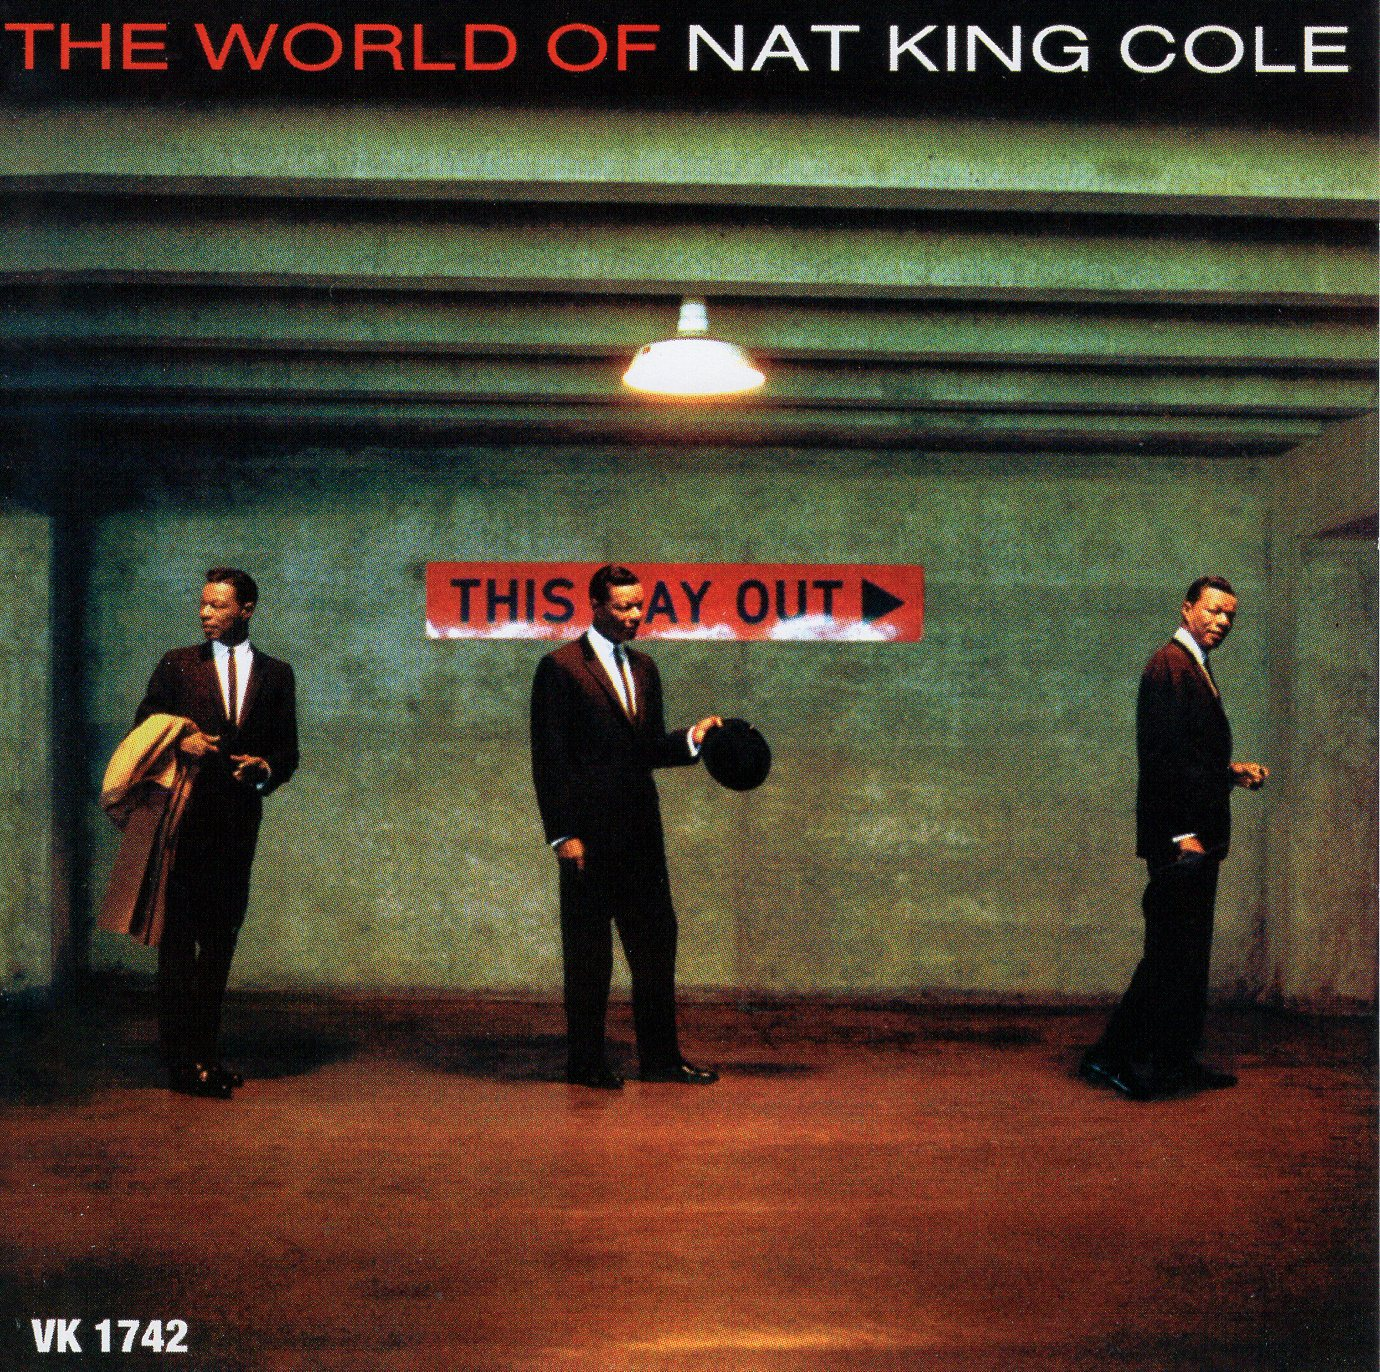 """The World of Nat King Cole: This Way Out"" Nat King Cole"